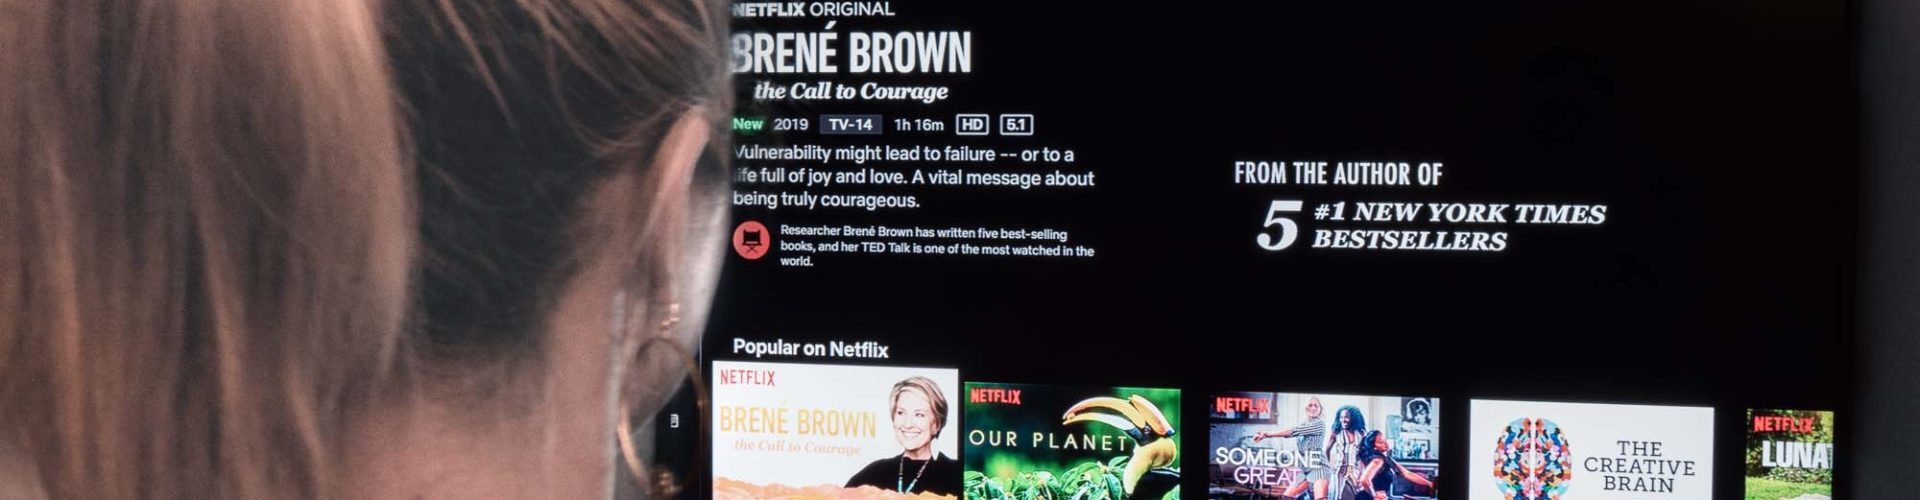 5 Life-Changing Takeaways from Brené Brown's Netflix Special